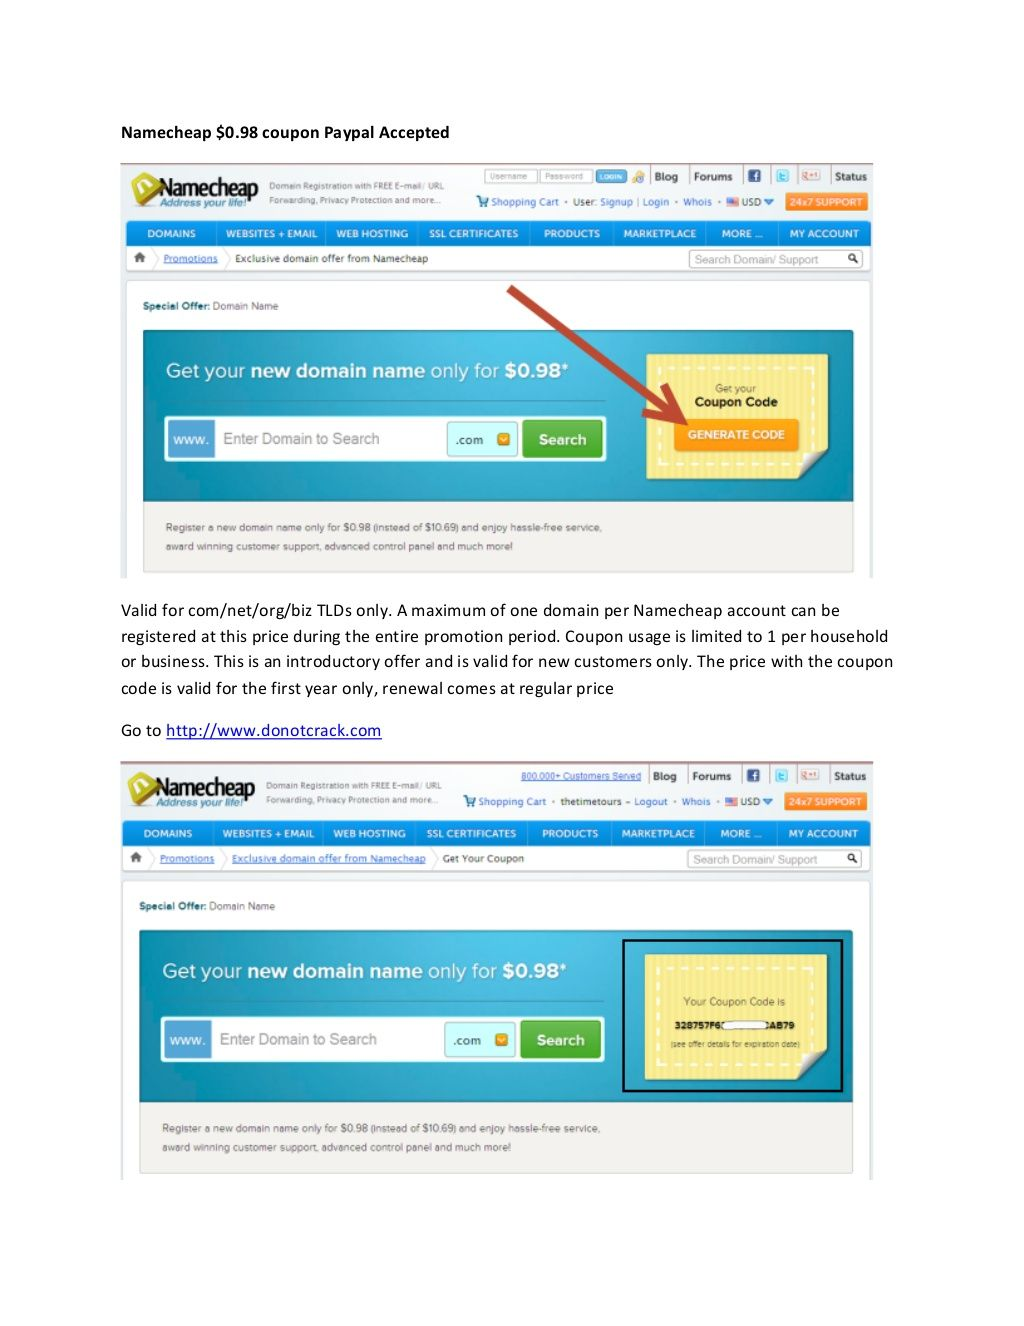 Namecheap 098 Coupon Paypal Accepted Namecheap Coupon Code